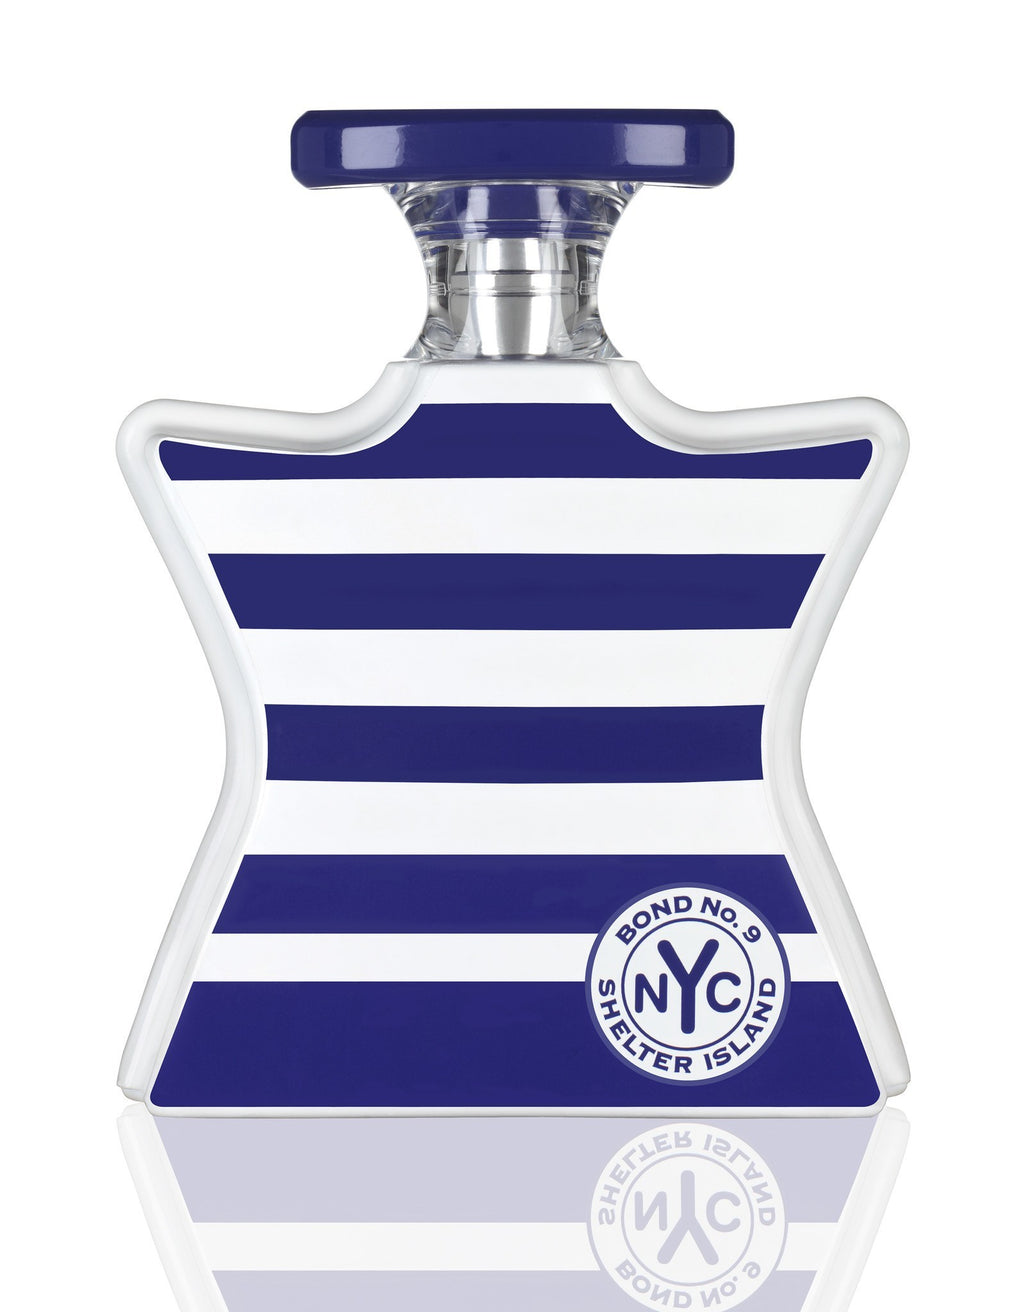 UNISEX FRAGRANCES - Shelter Island 3.4 EDP For Unisex